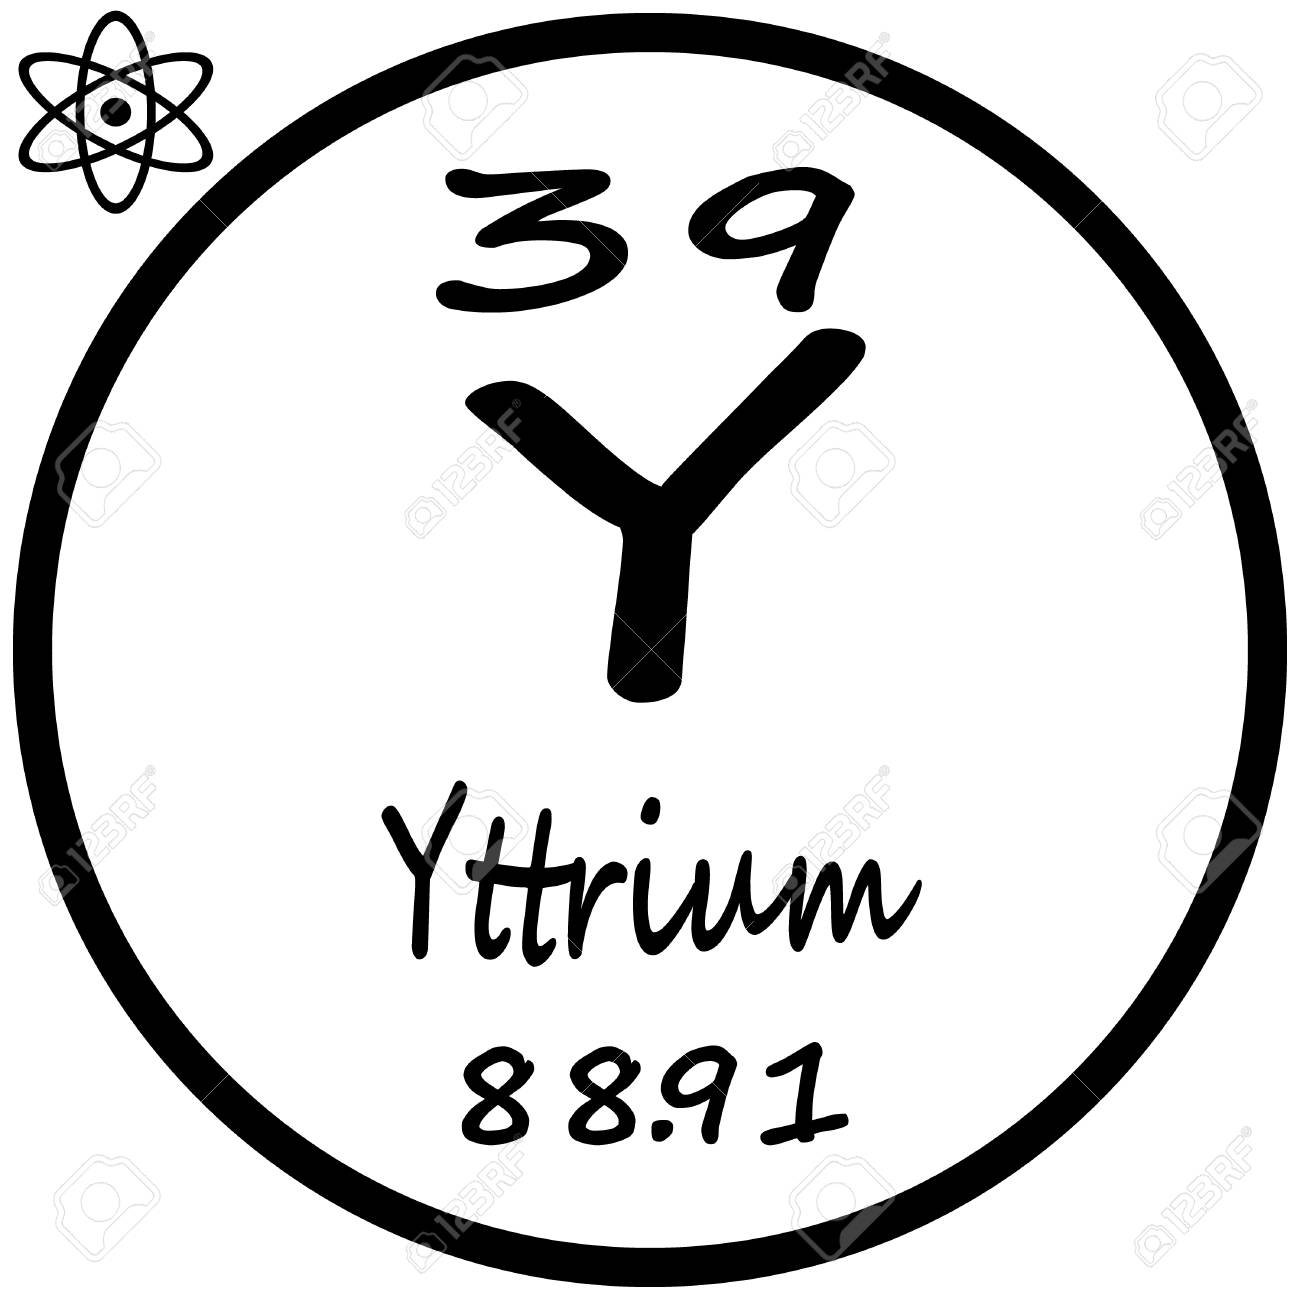 Periodic table of elements yttrium royalty free cliparts vectors periodic table of elements yttrium stock vector 53482490 urtaz Images